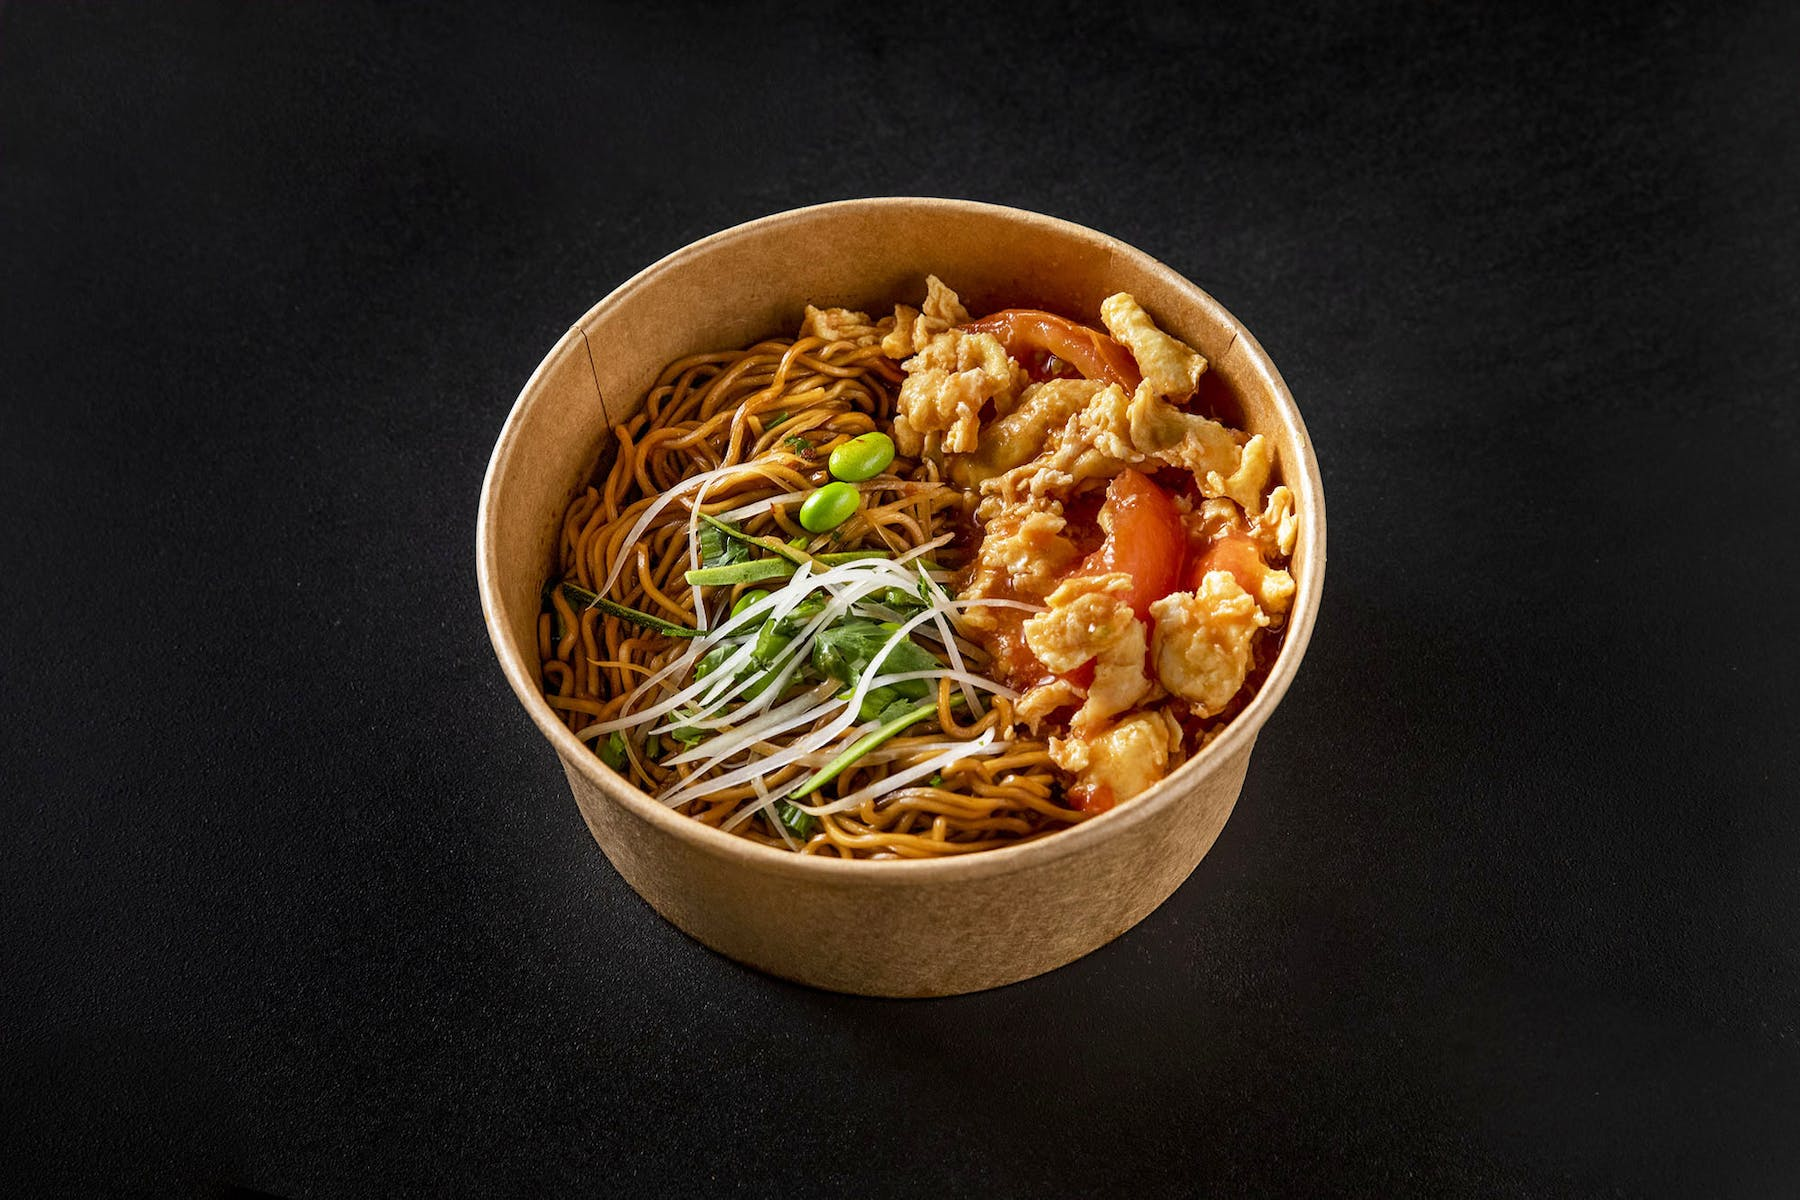 bowl of noodles topped with veggies